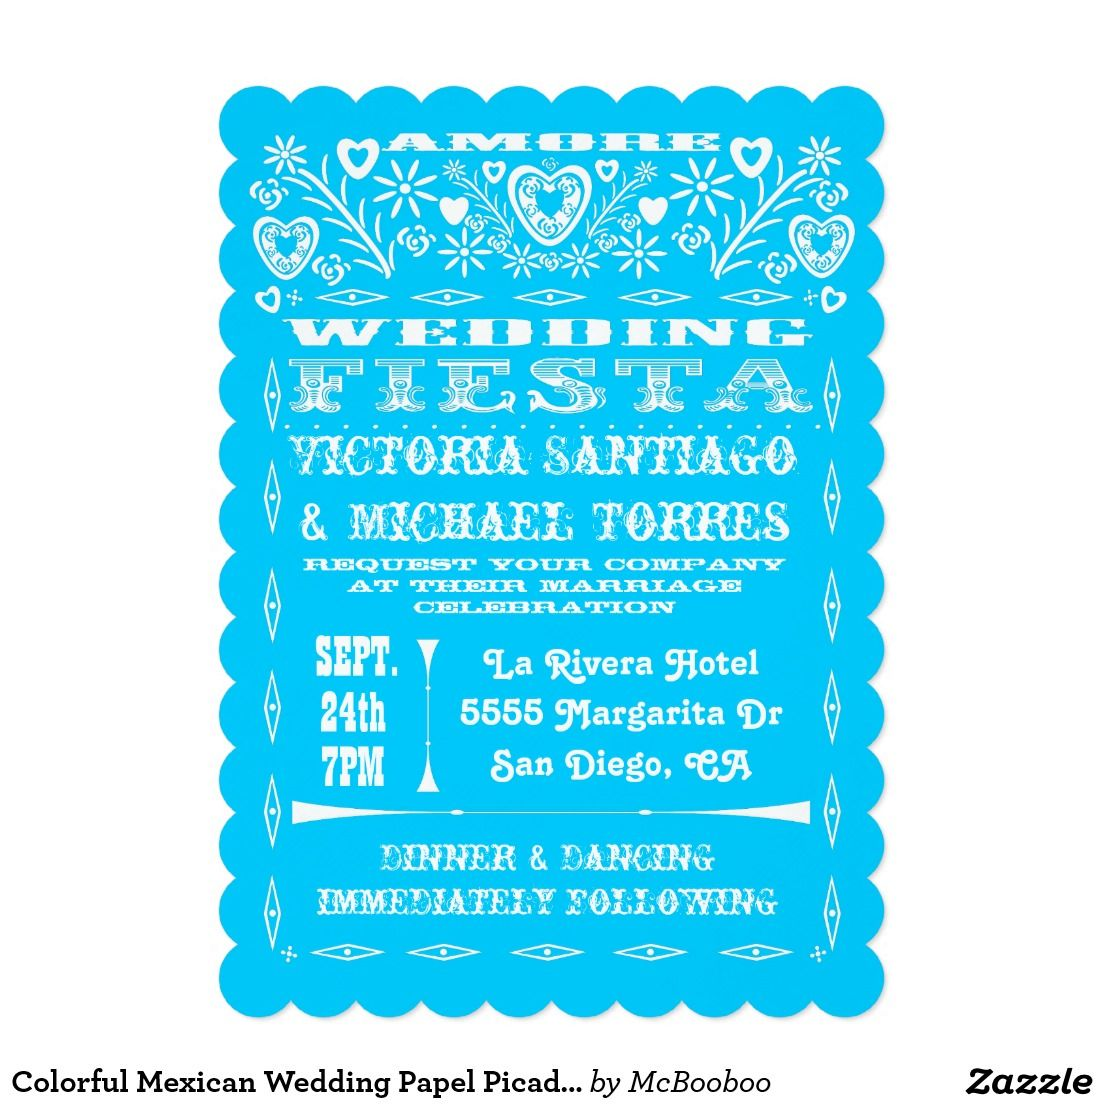 Colorful Mexican Wedding Papel Picado Invitation